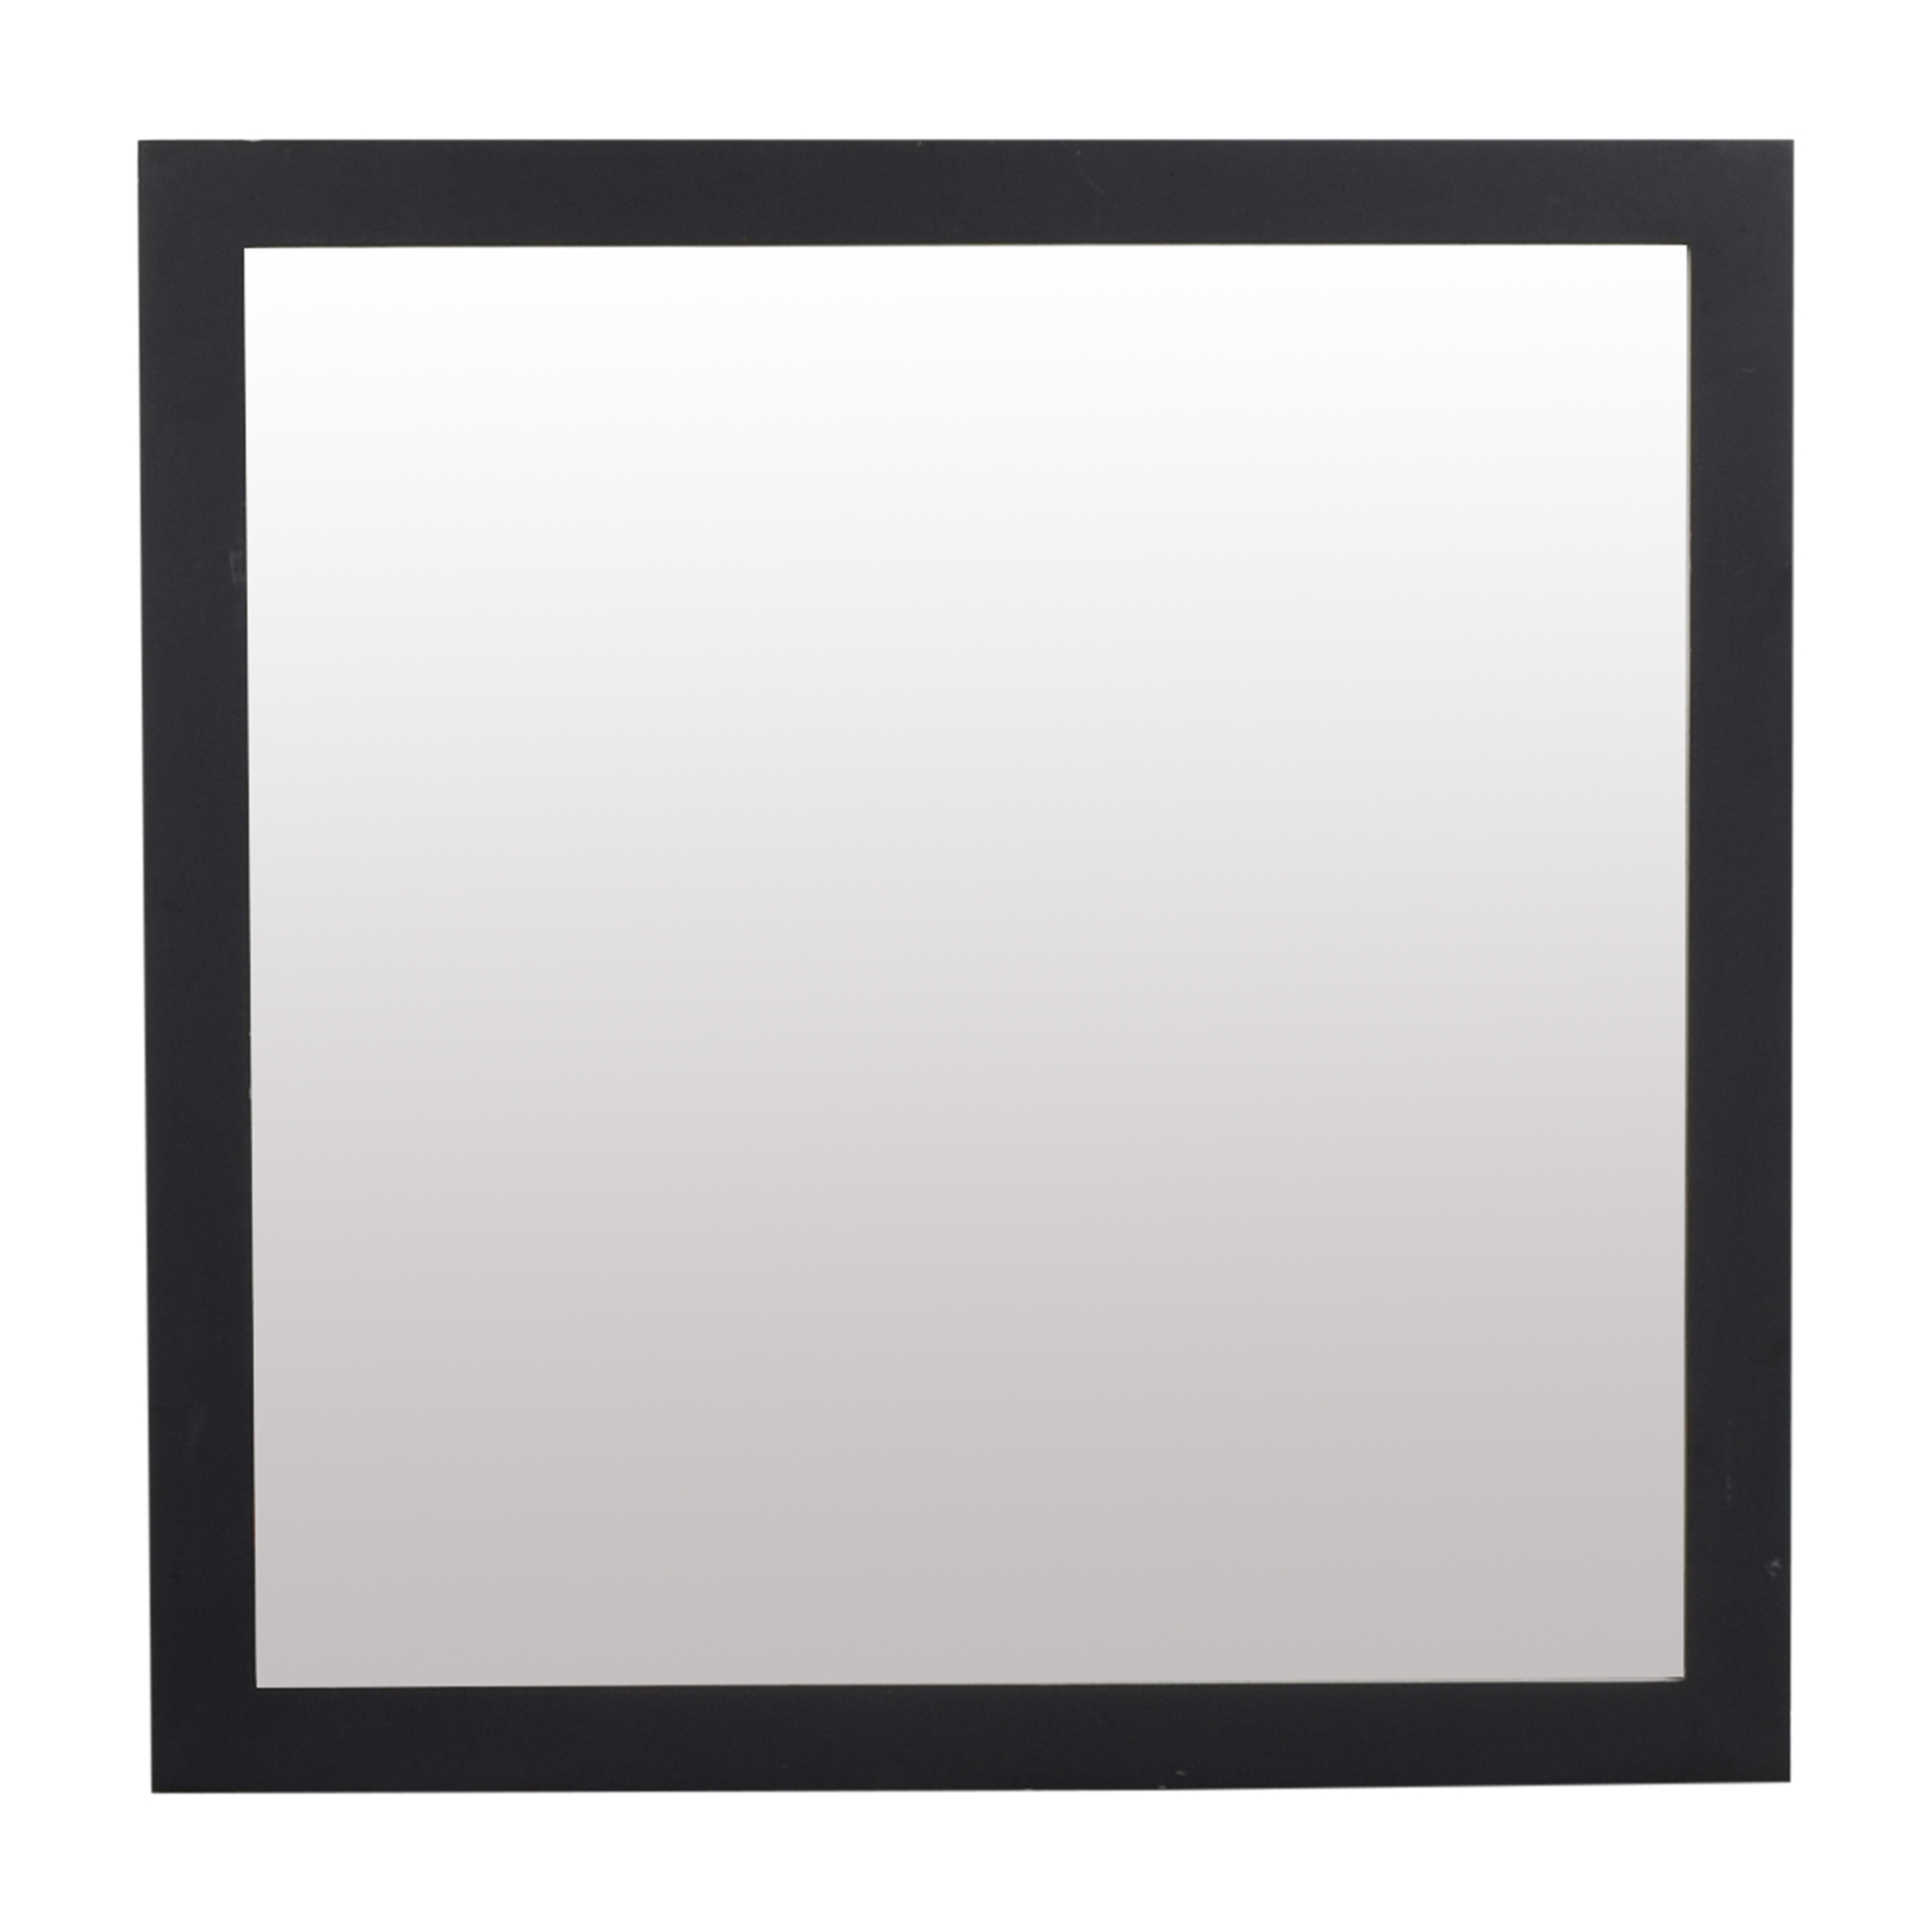 Pottery Barn Pottery Barn Square Wall Mirror for sale